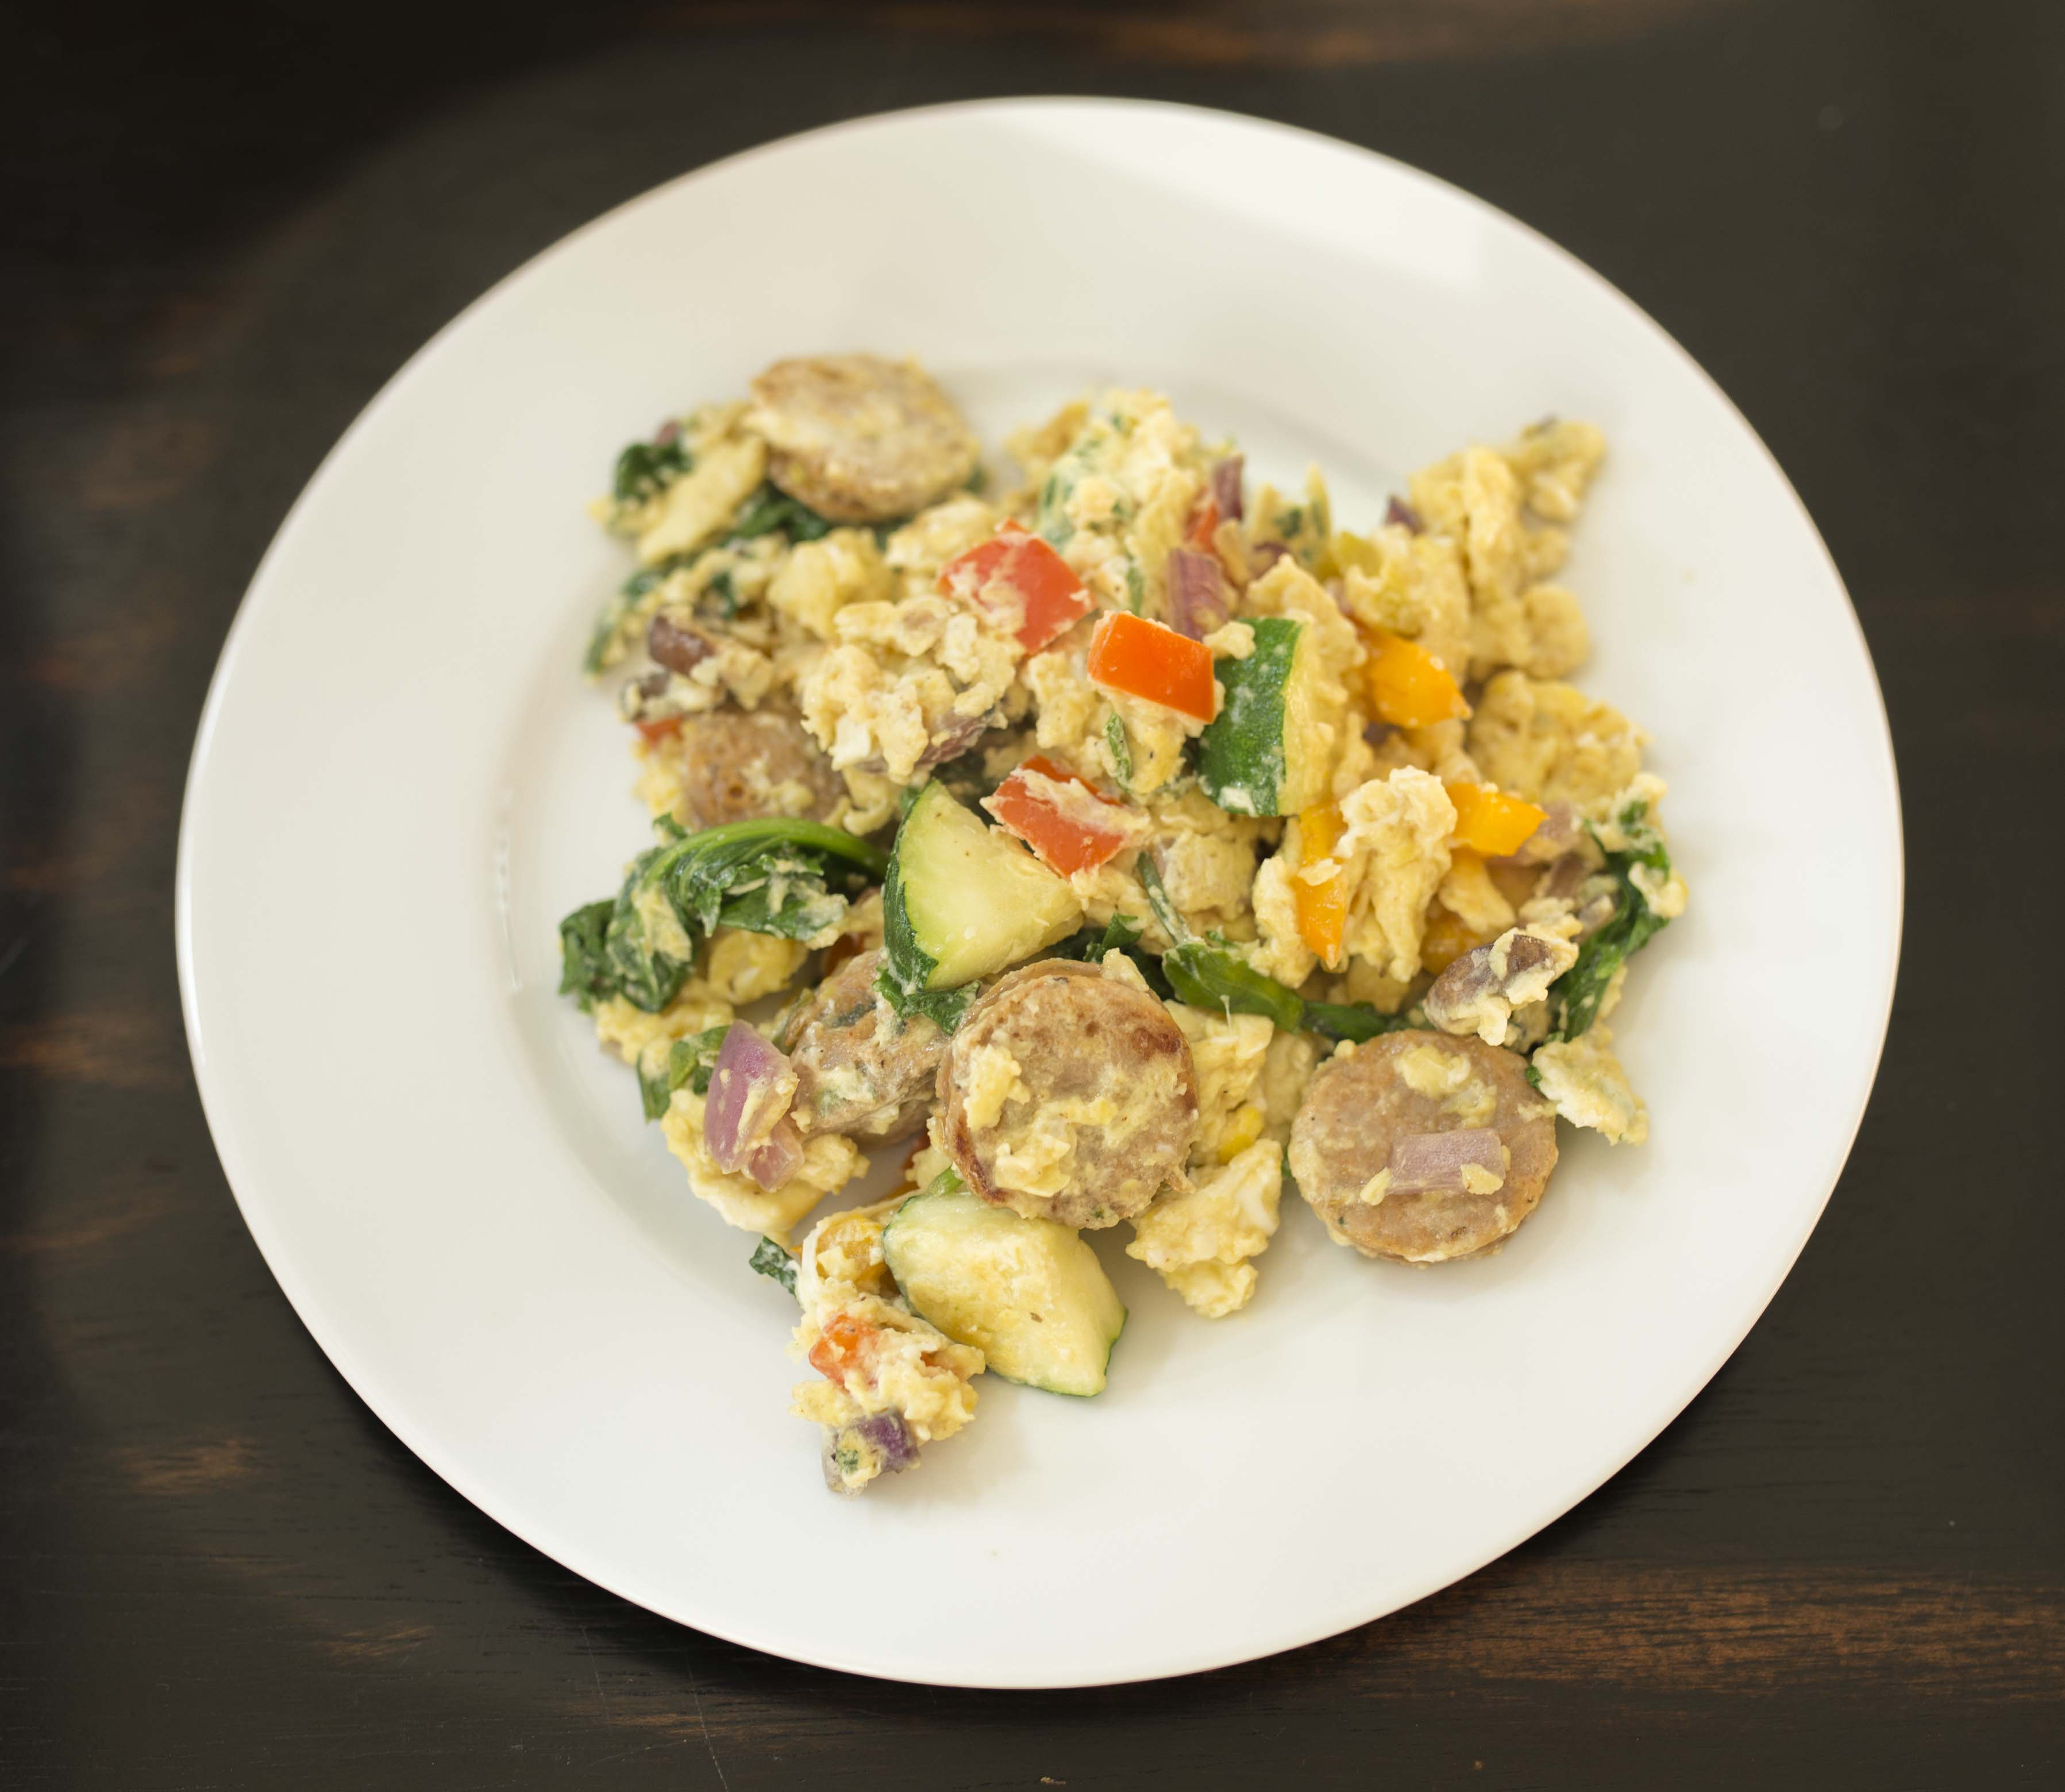 Chicken Sausage and Veggie Omelet